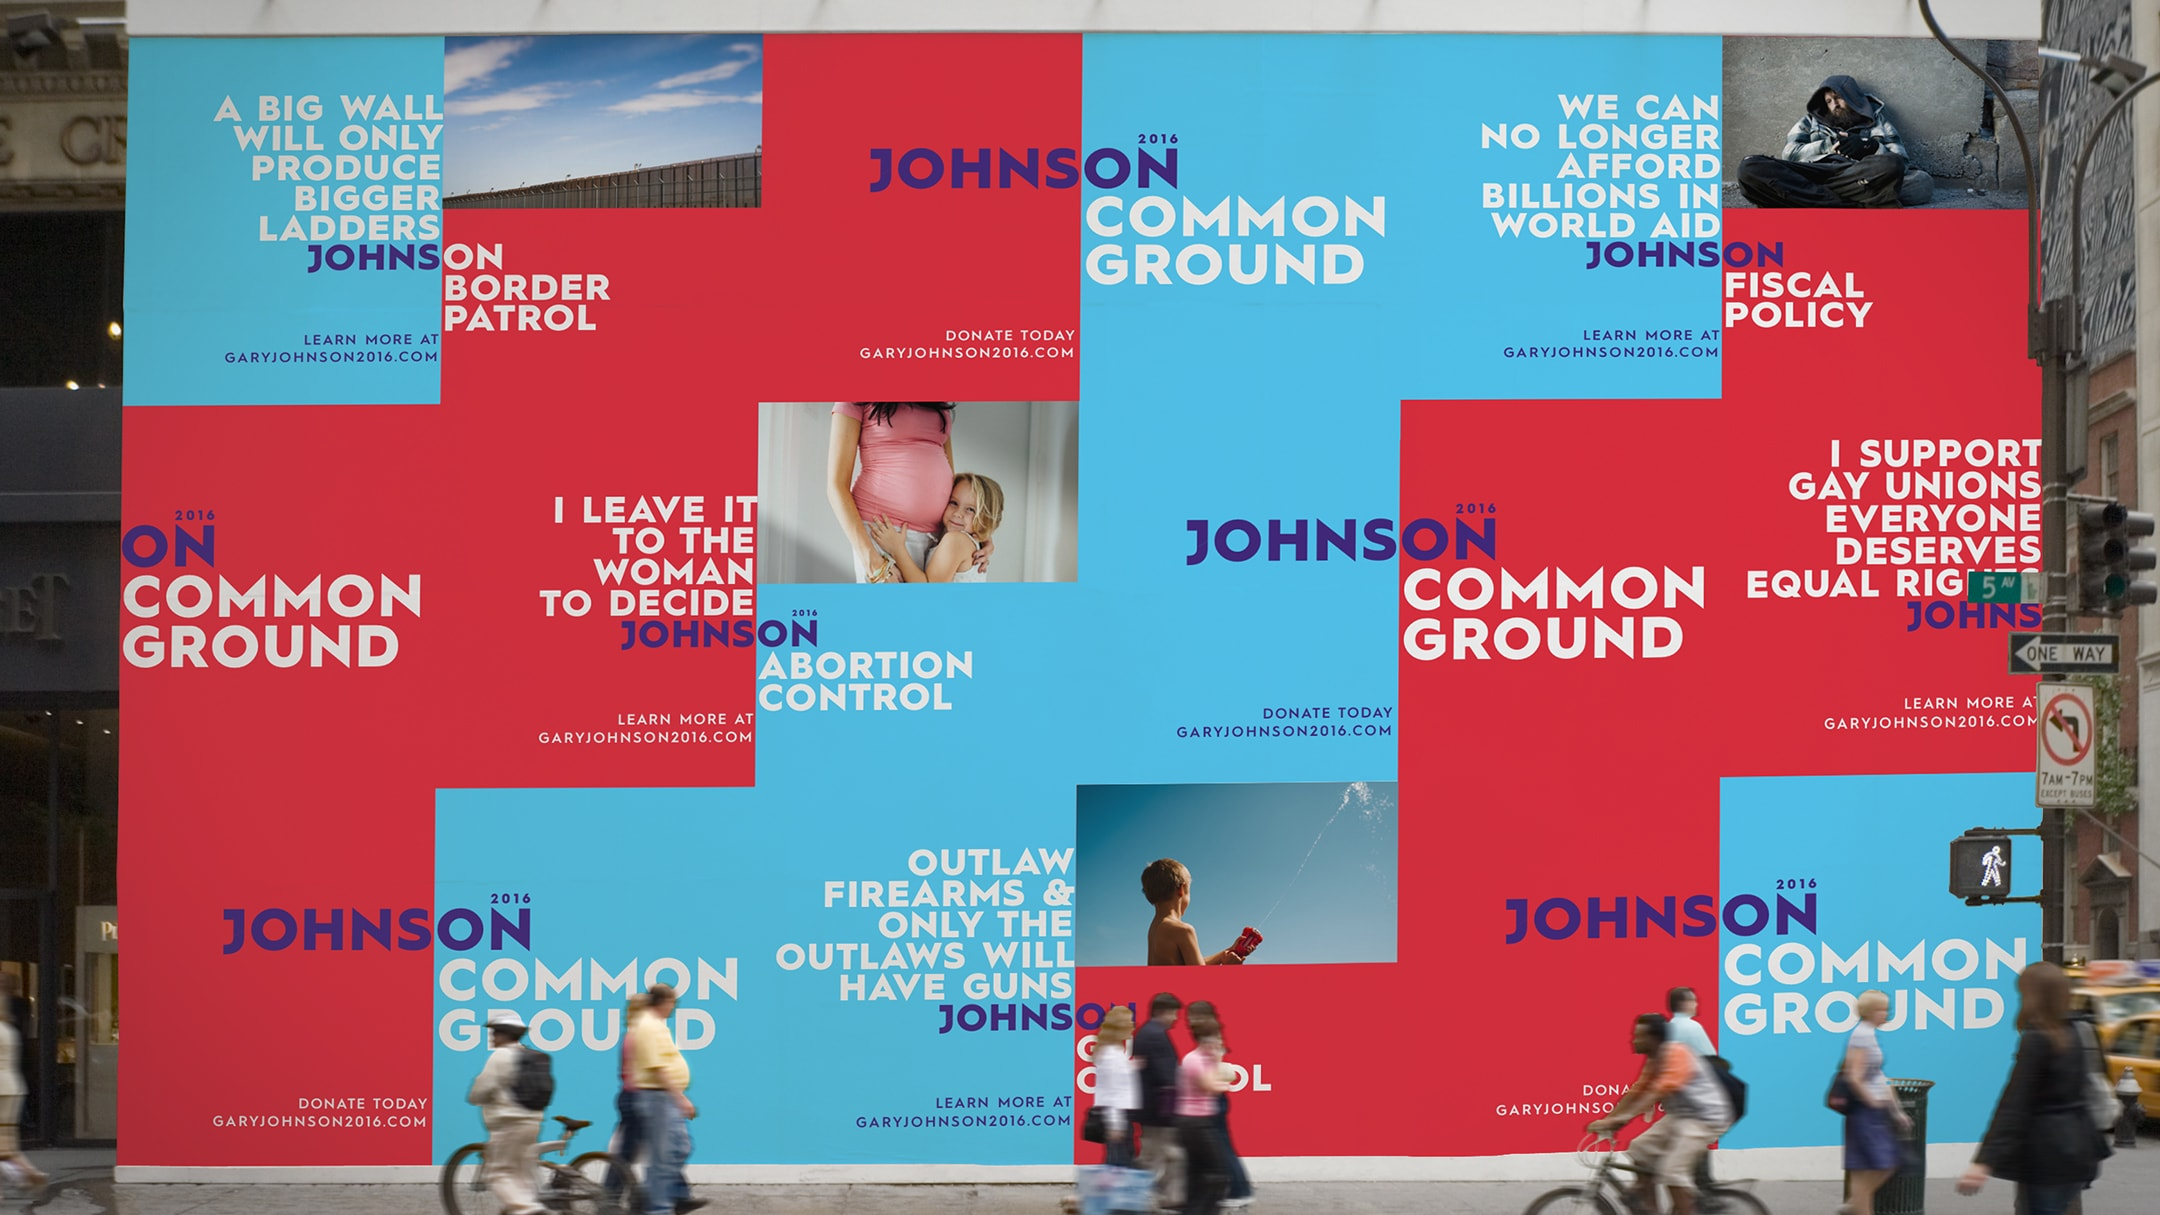 Gary Johnson spec campaign outdoor